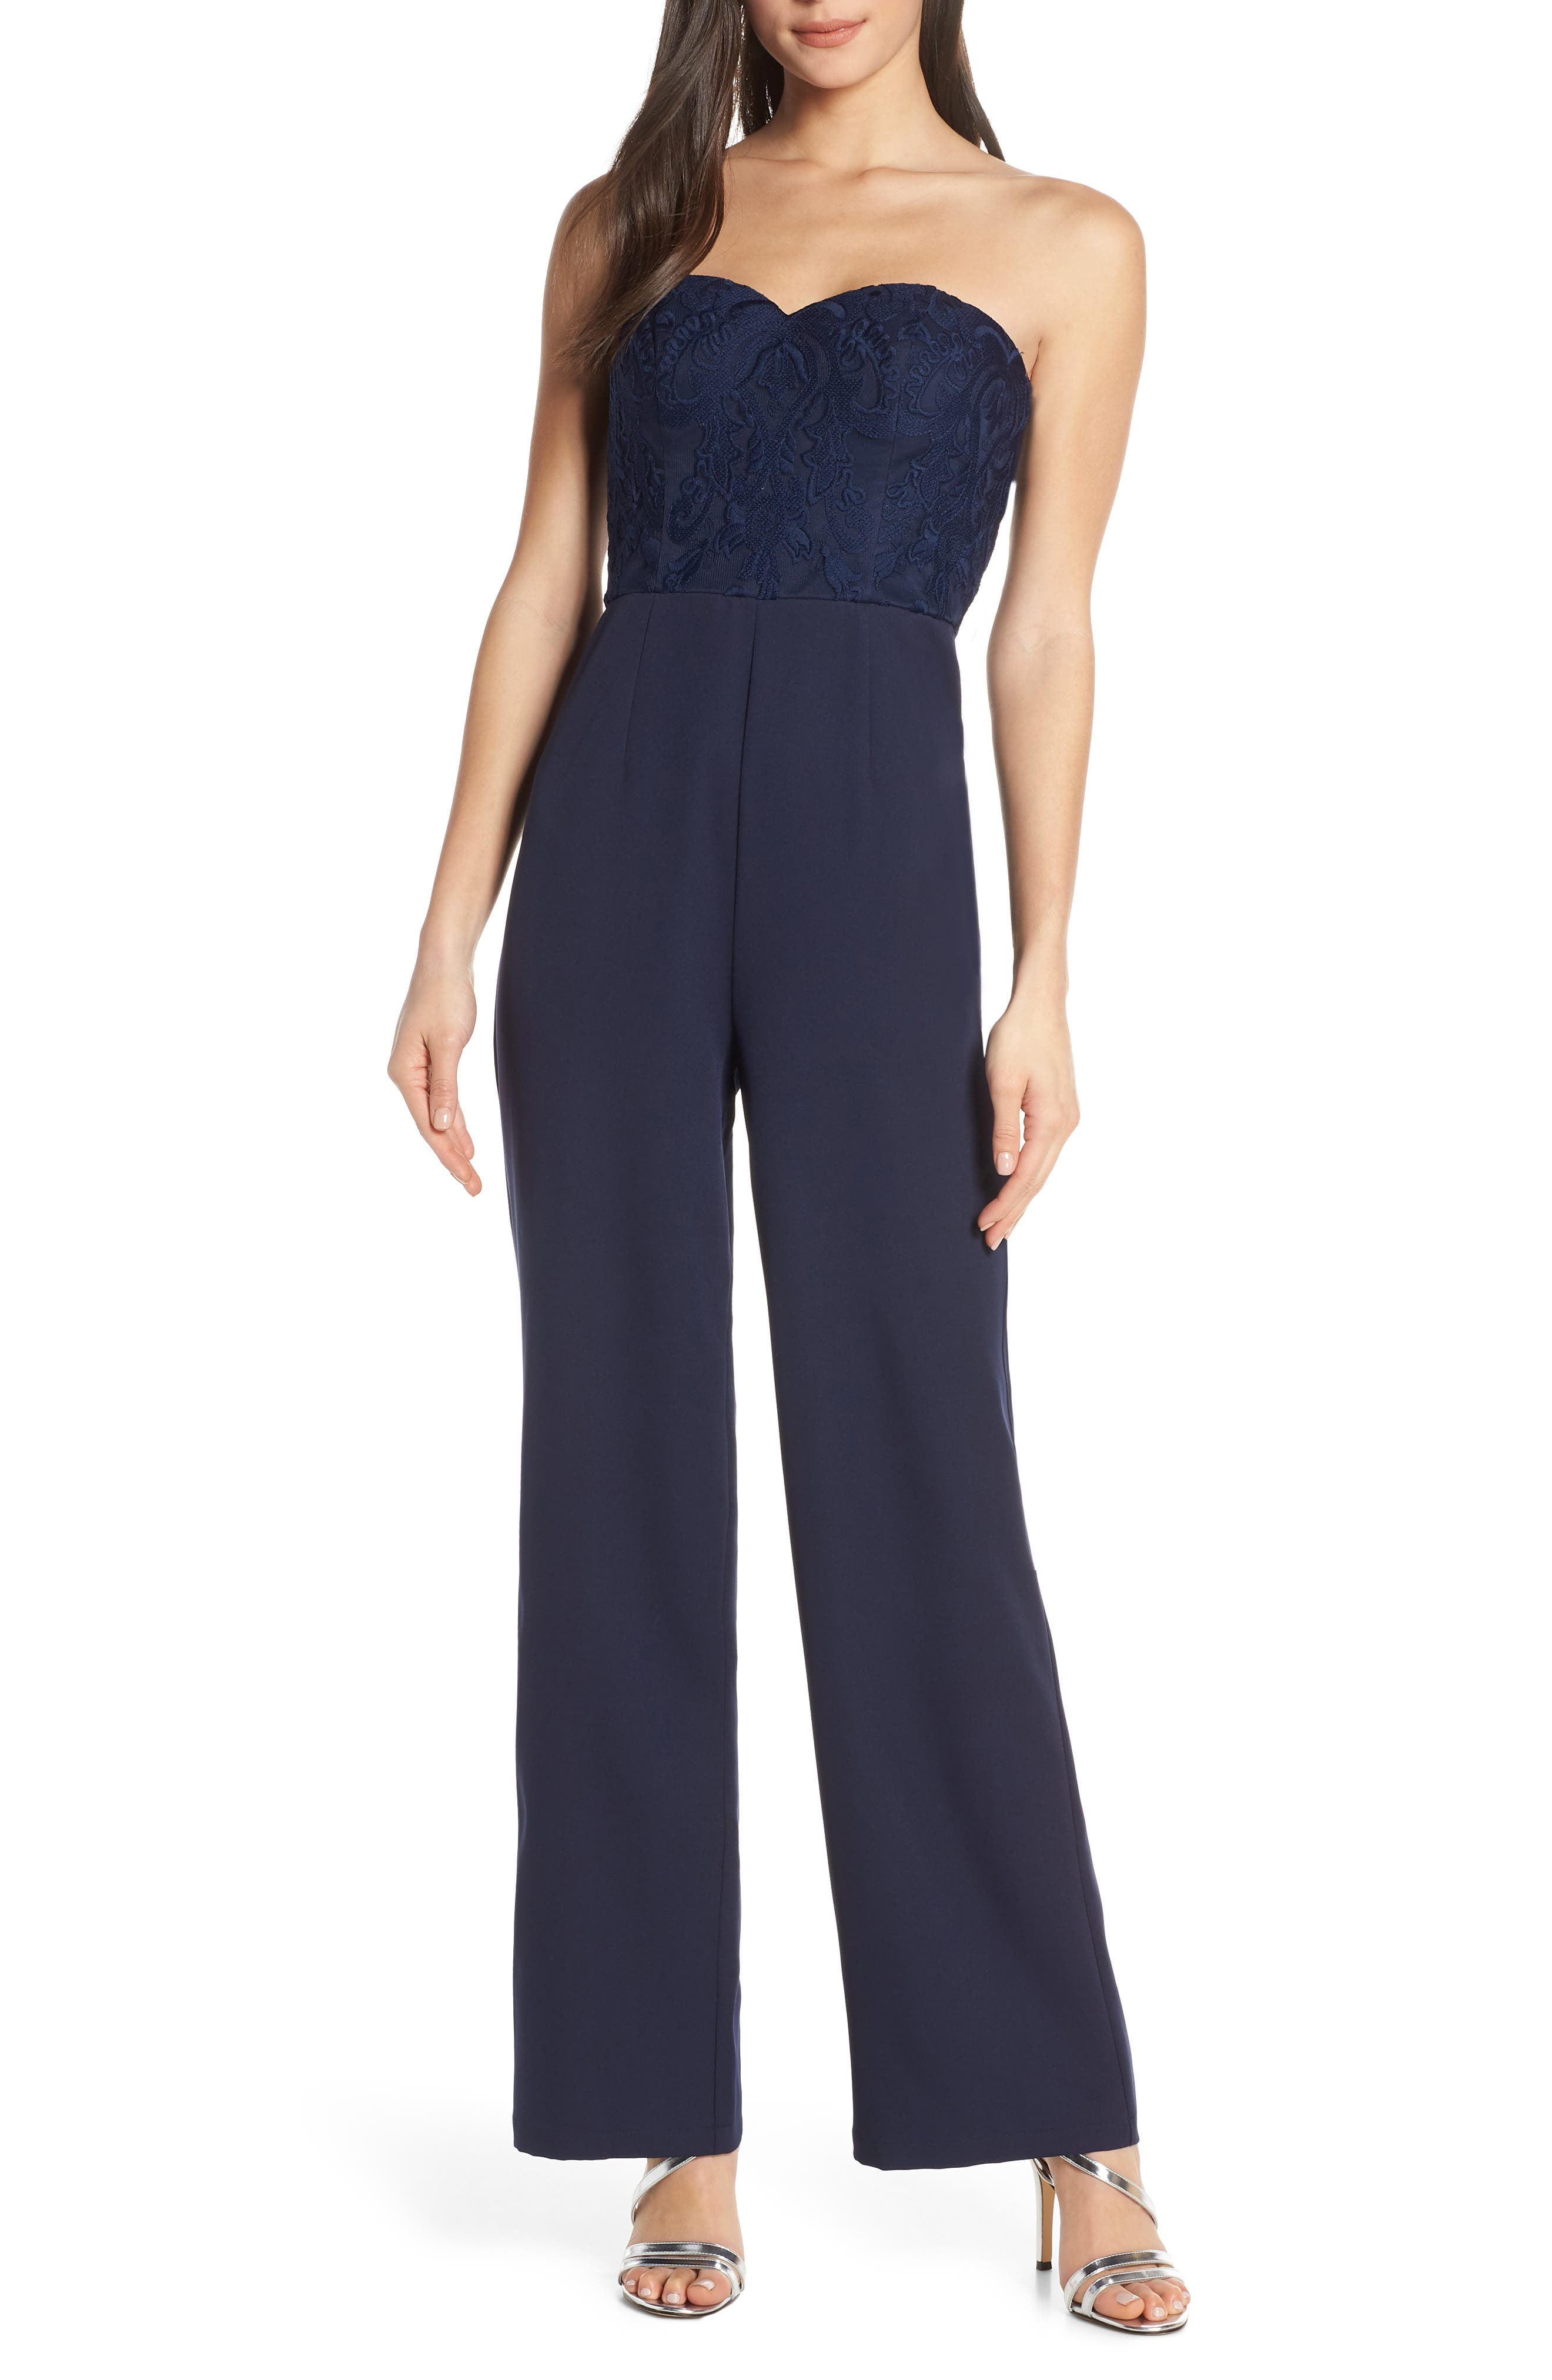 Chi Chi London Naomi Embroidered Bodice Strapless Jumpsuit, Blue